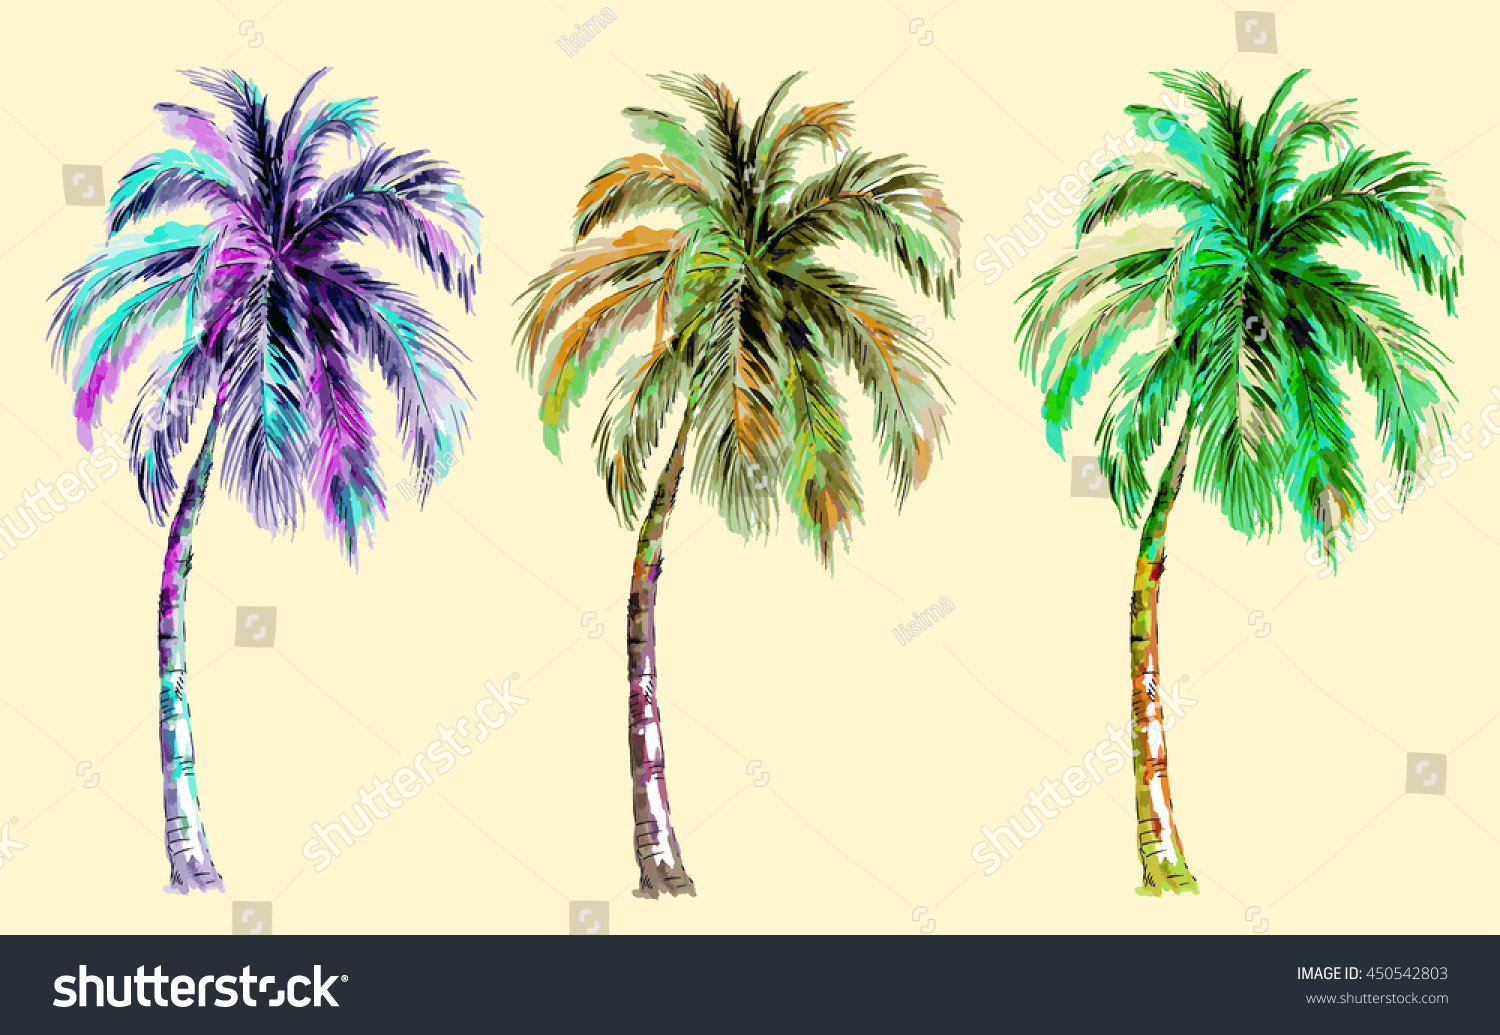 Collection Tropical Palm Trees Watercolor Style Stock Vector ...